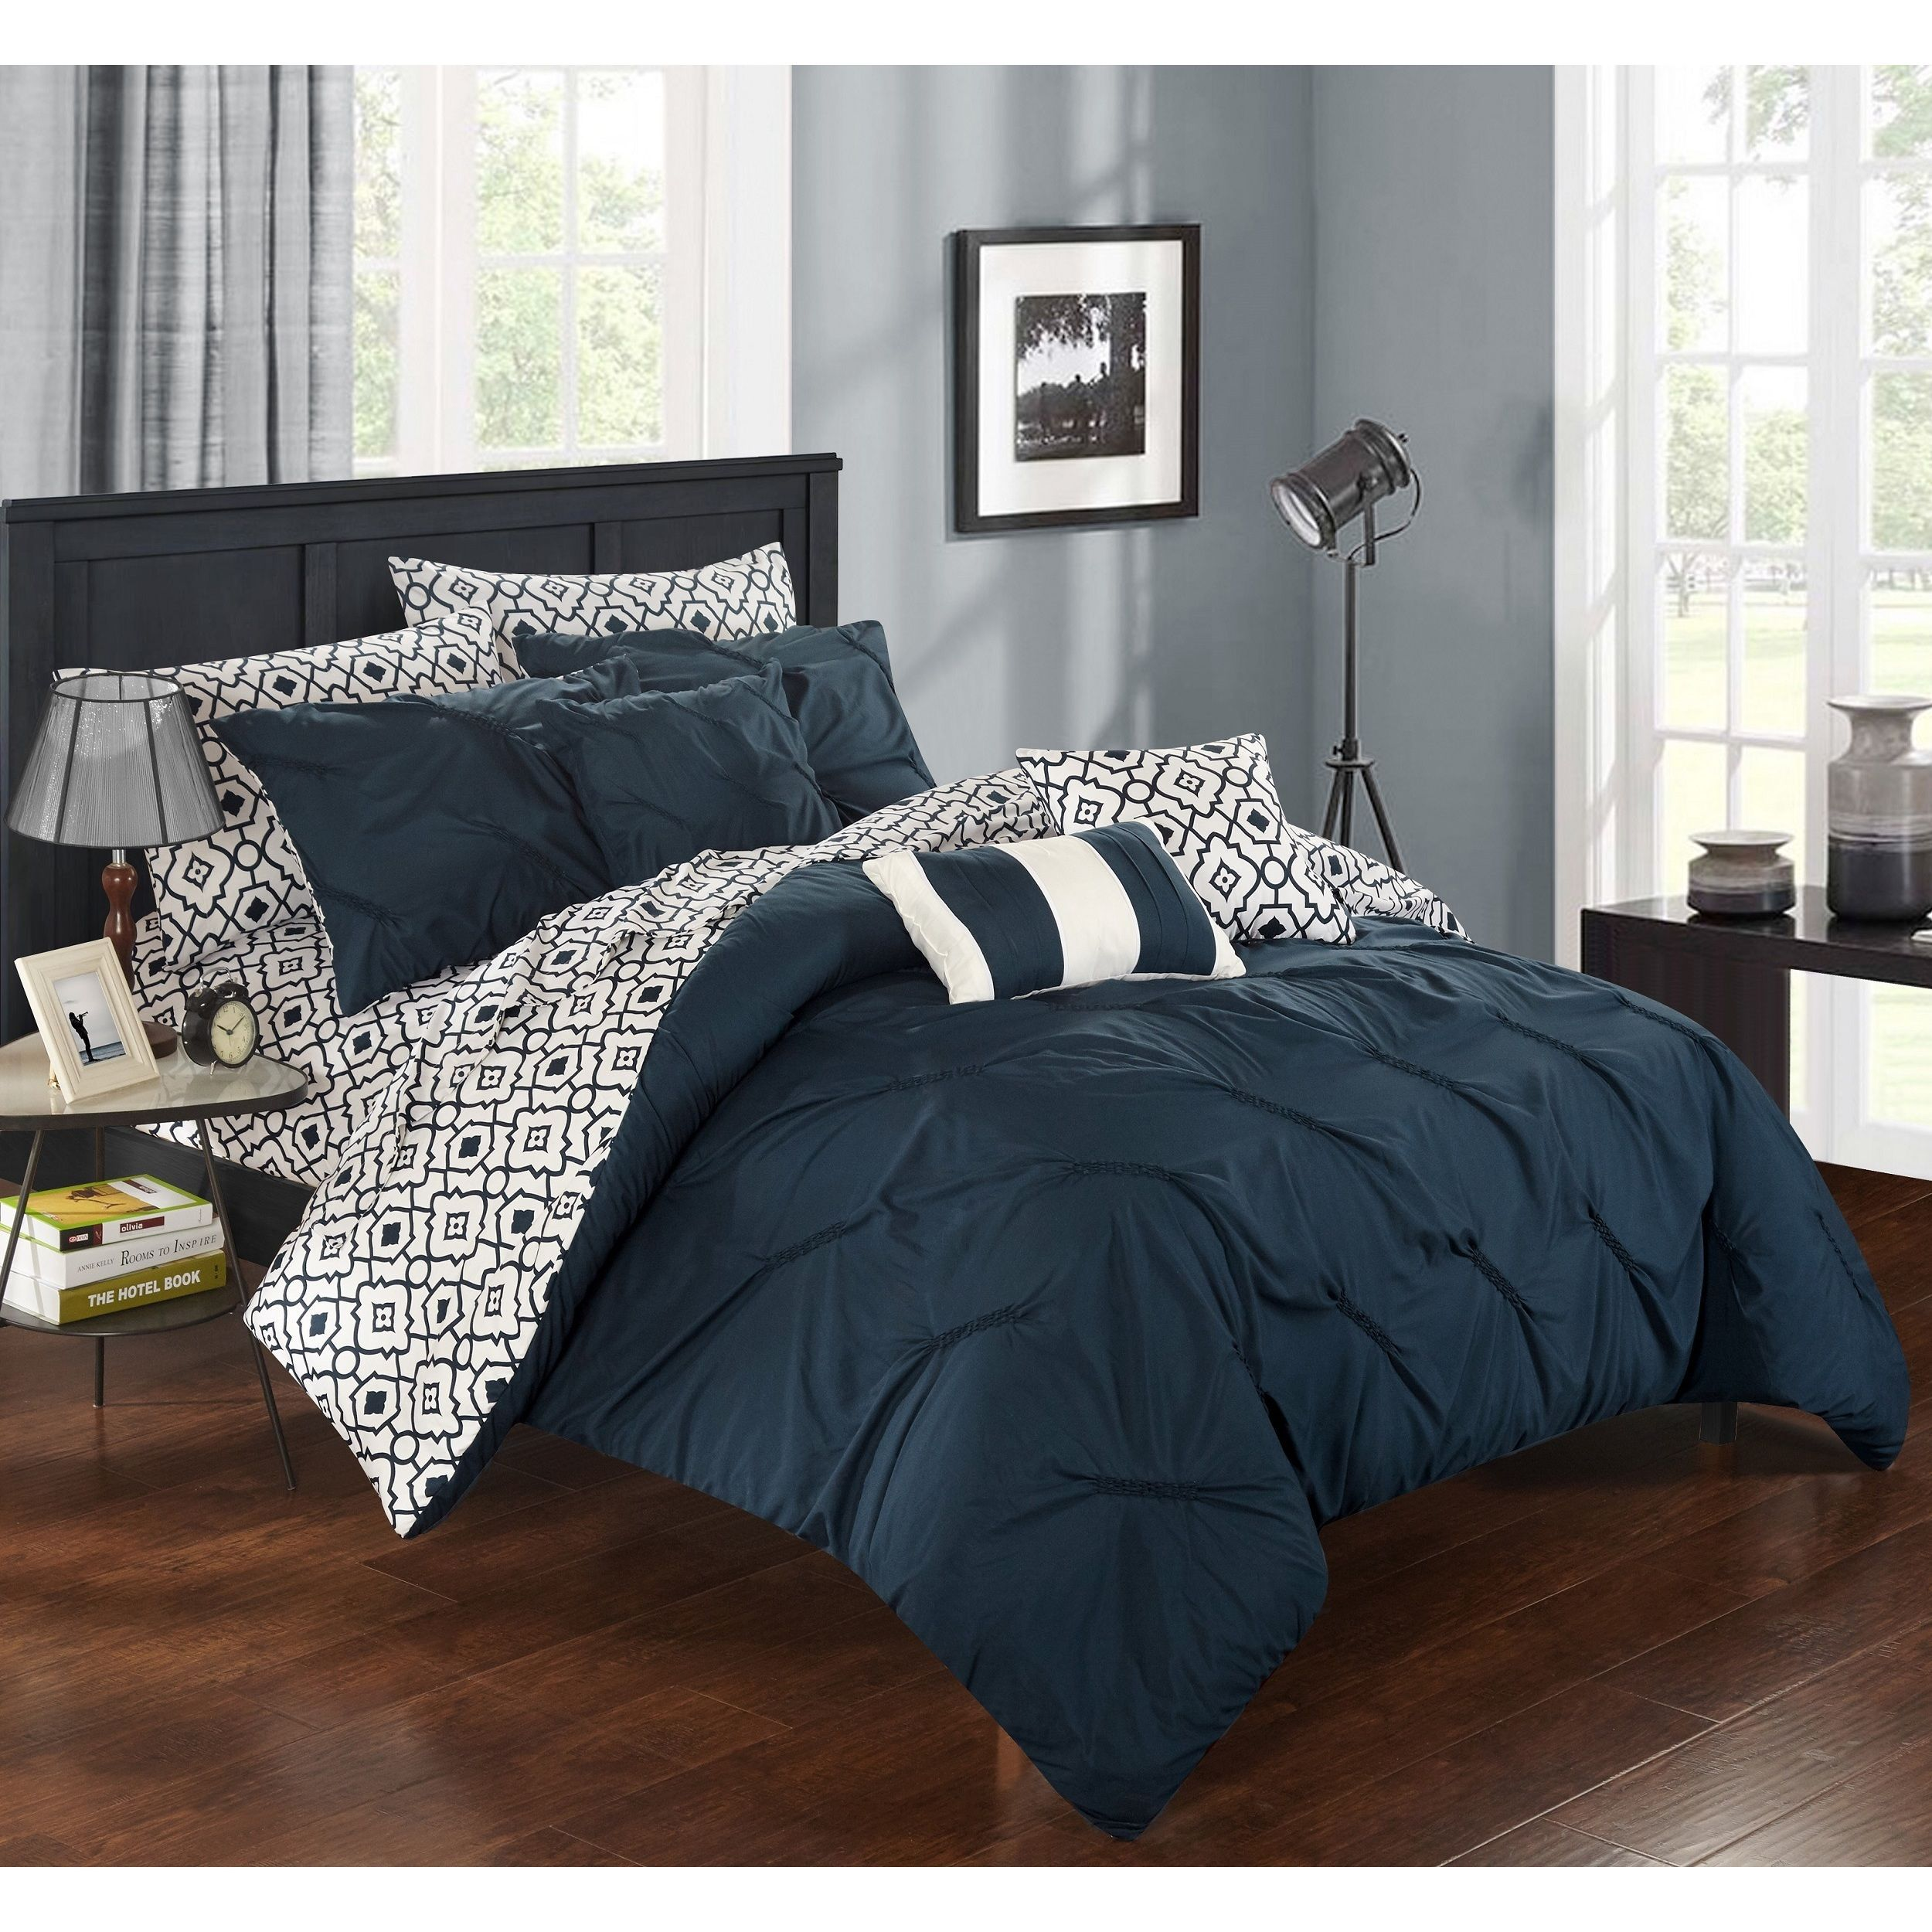 Overstock Com Online Shopping Bedding Furniture Electronics Jewelry Clothing More Comforter Sets Bed Comforters Bed Makeover